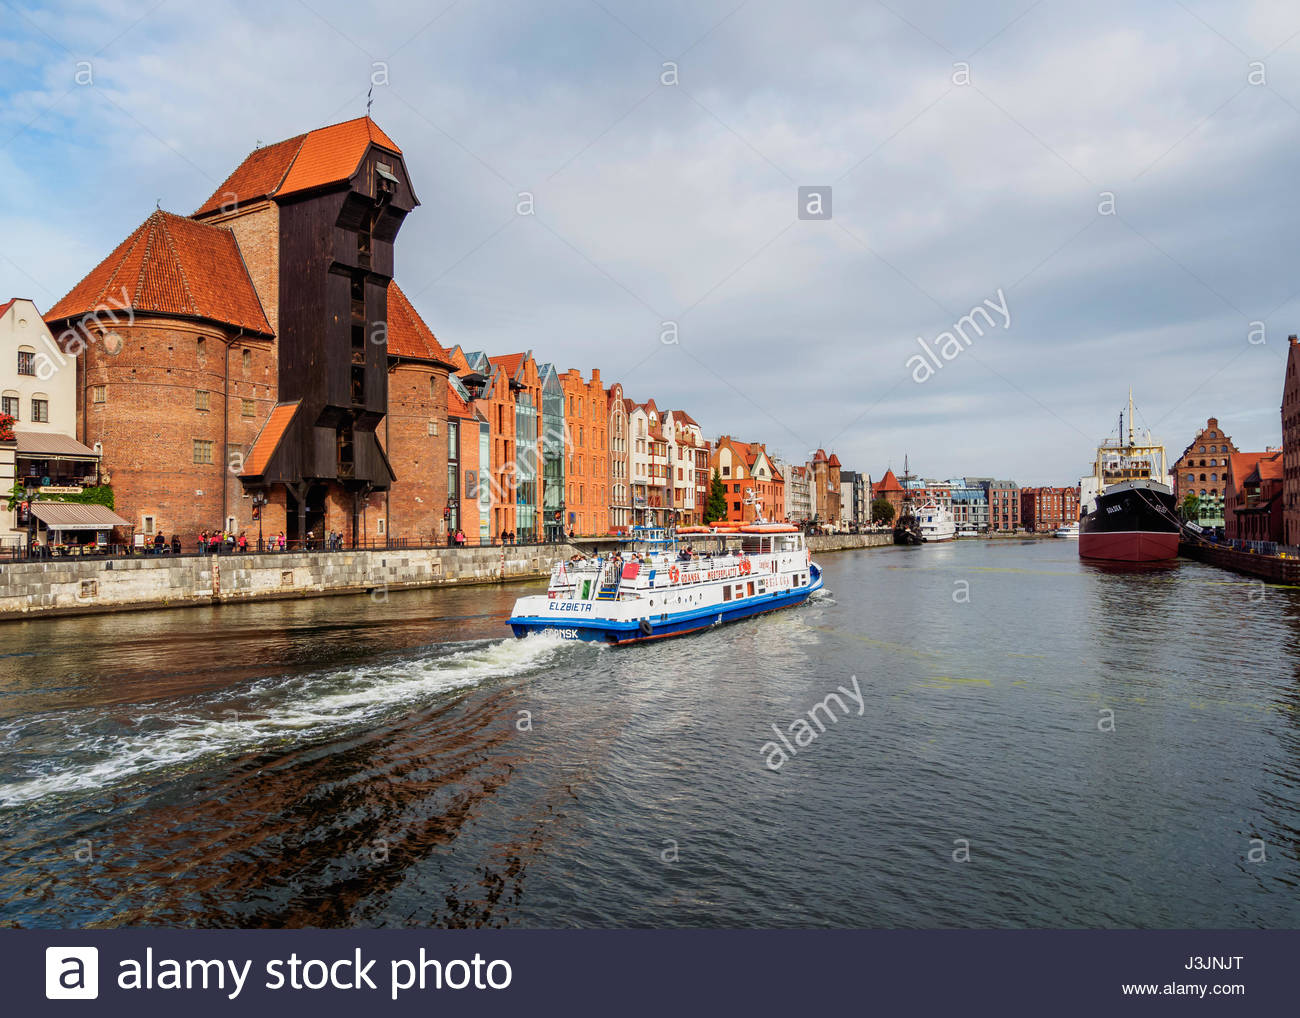 Brama Wyżynna The Baltic Coast and Pomerania, Poland, Pomeranian Voivodeship, Gdansk, Old Town, Motlawa River ...